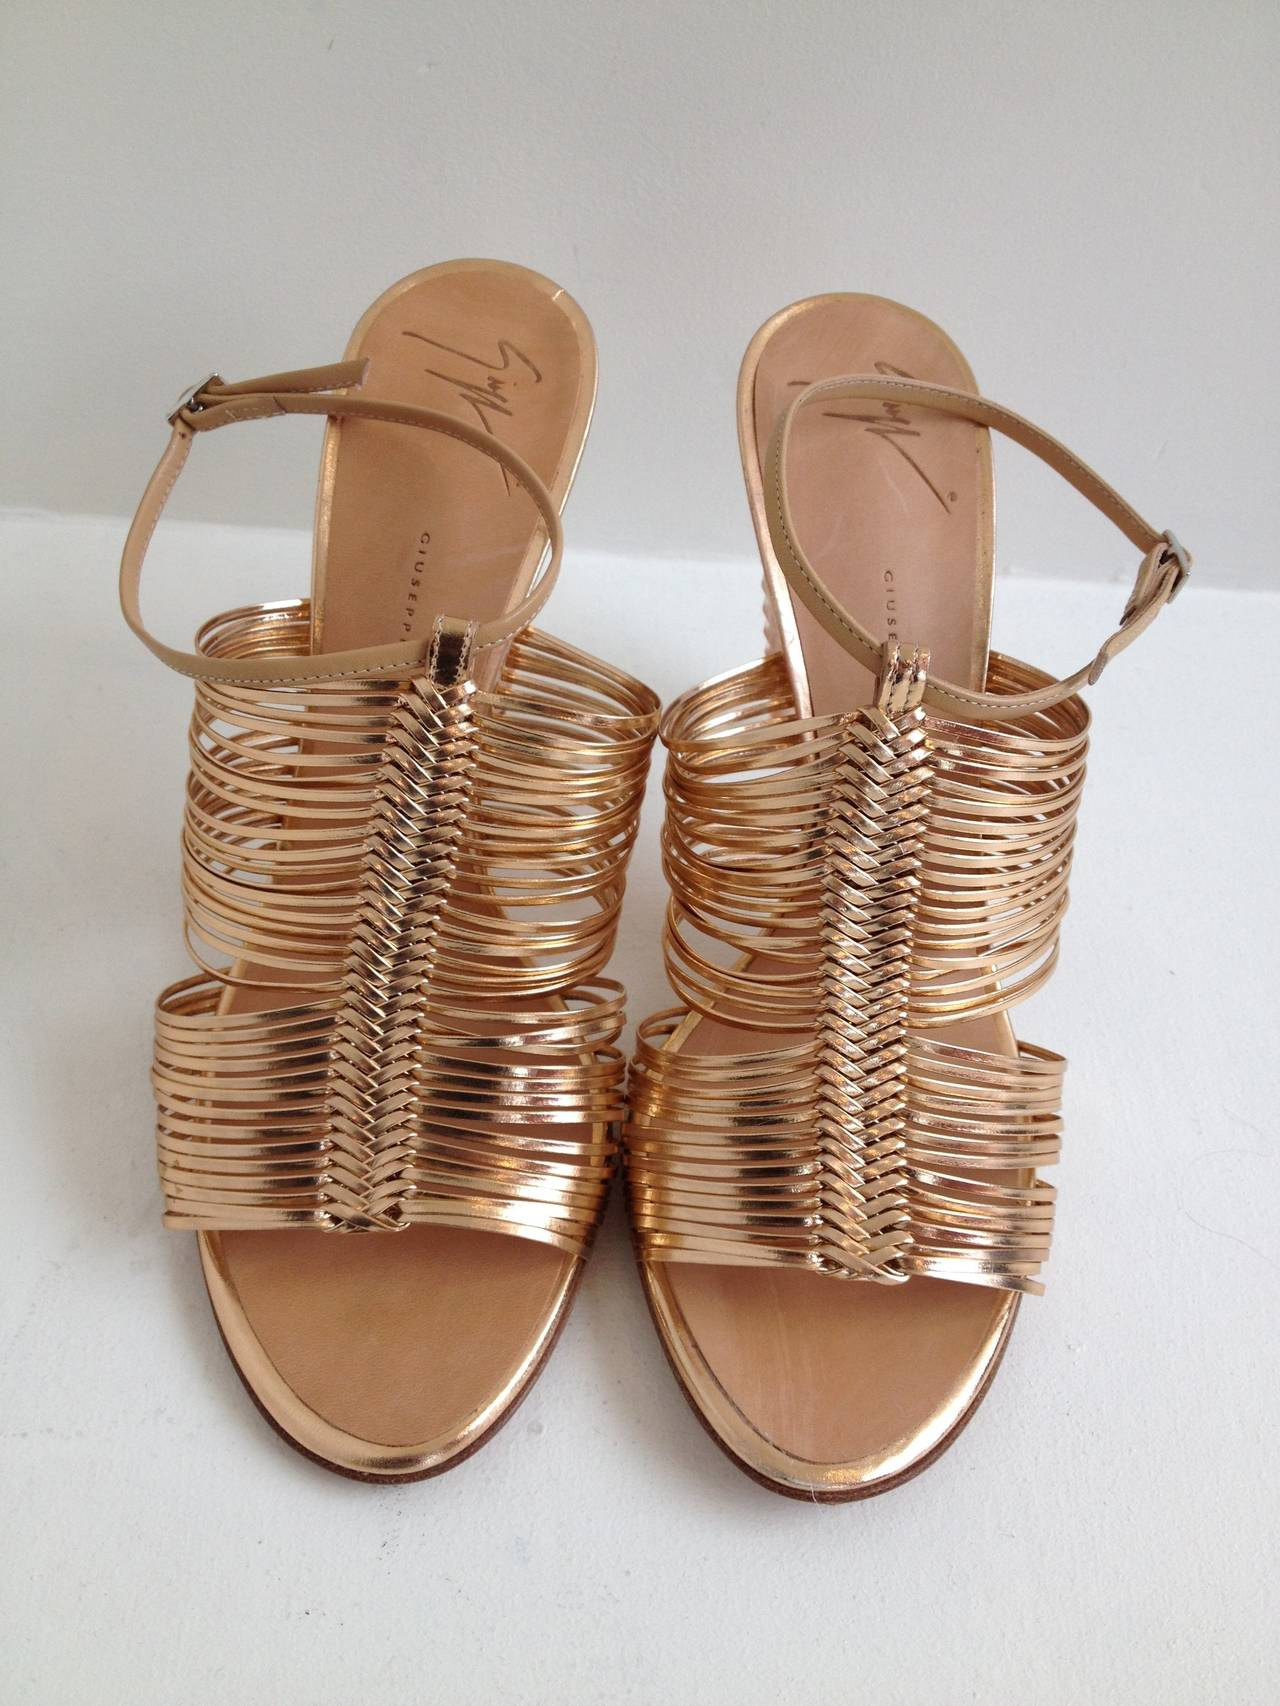 Giuseppe Zanotti is known for wild and bold footwear, and this shoe certainly proves it. The front of this sandal is a lattice of ultra thin rose gold metallic straps woven together into a fishtail-like braid. The 4.25 inch heel is cast to be